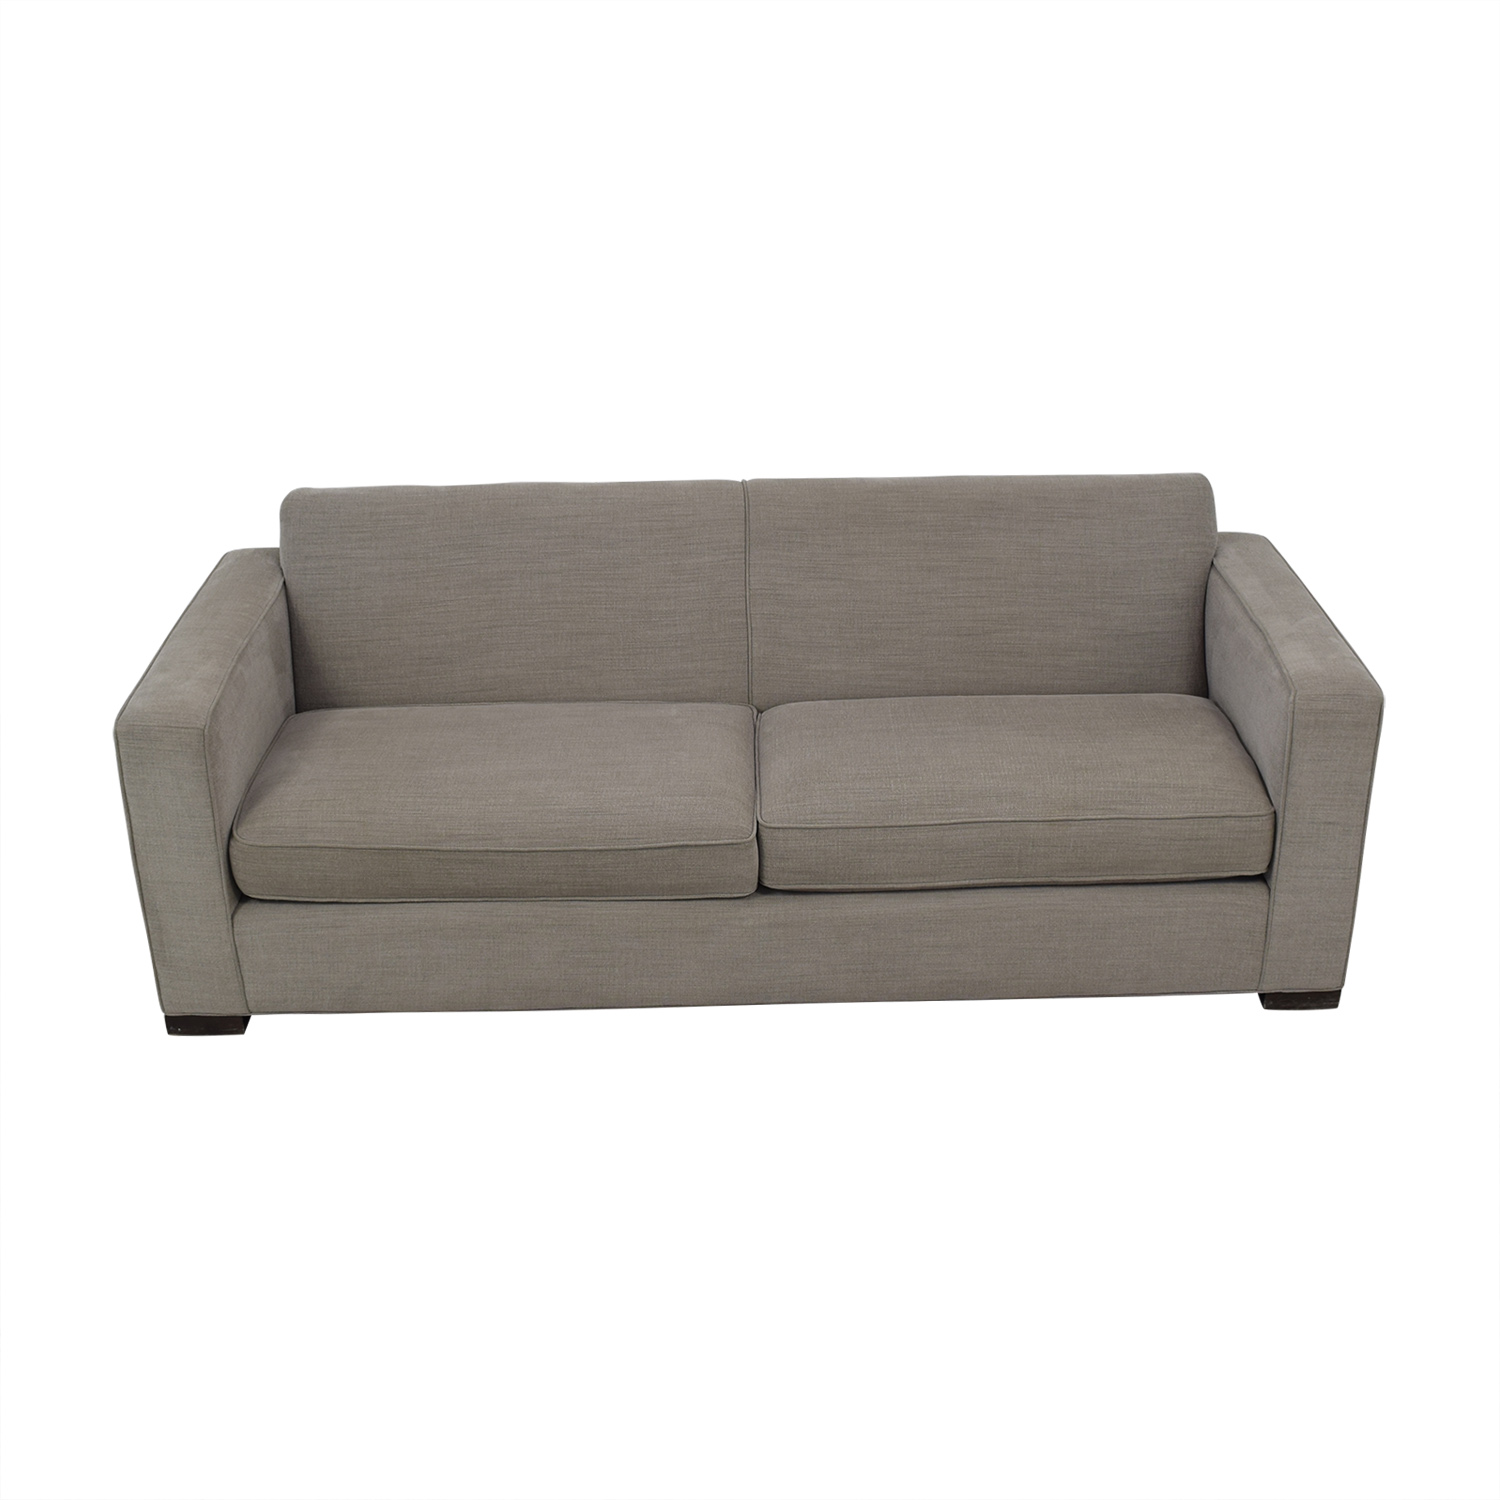 shop Room & Board Room & Board Ian Sofa online